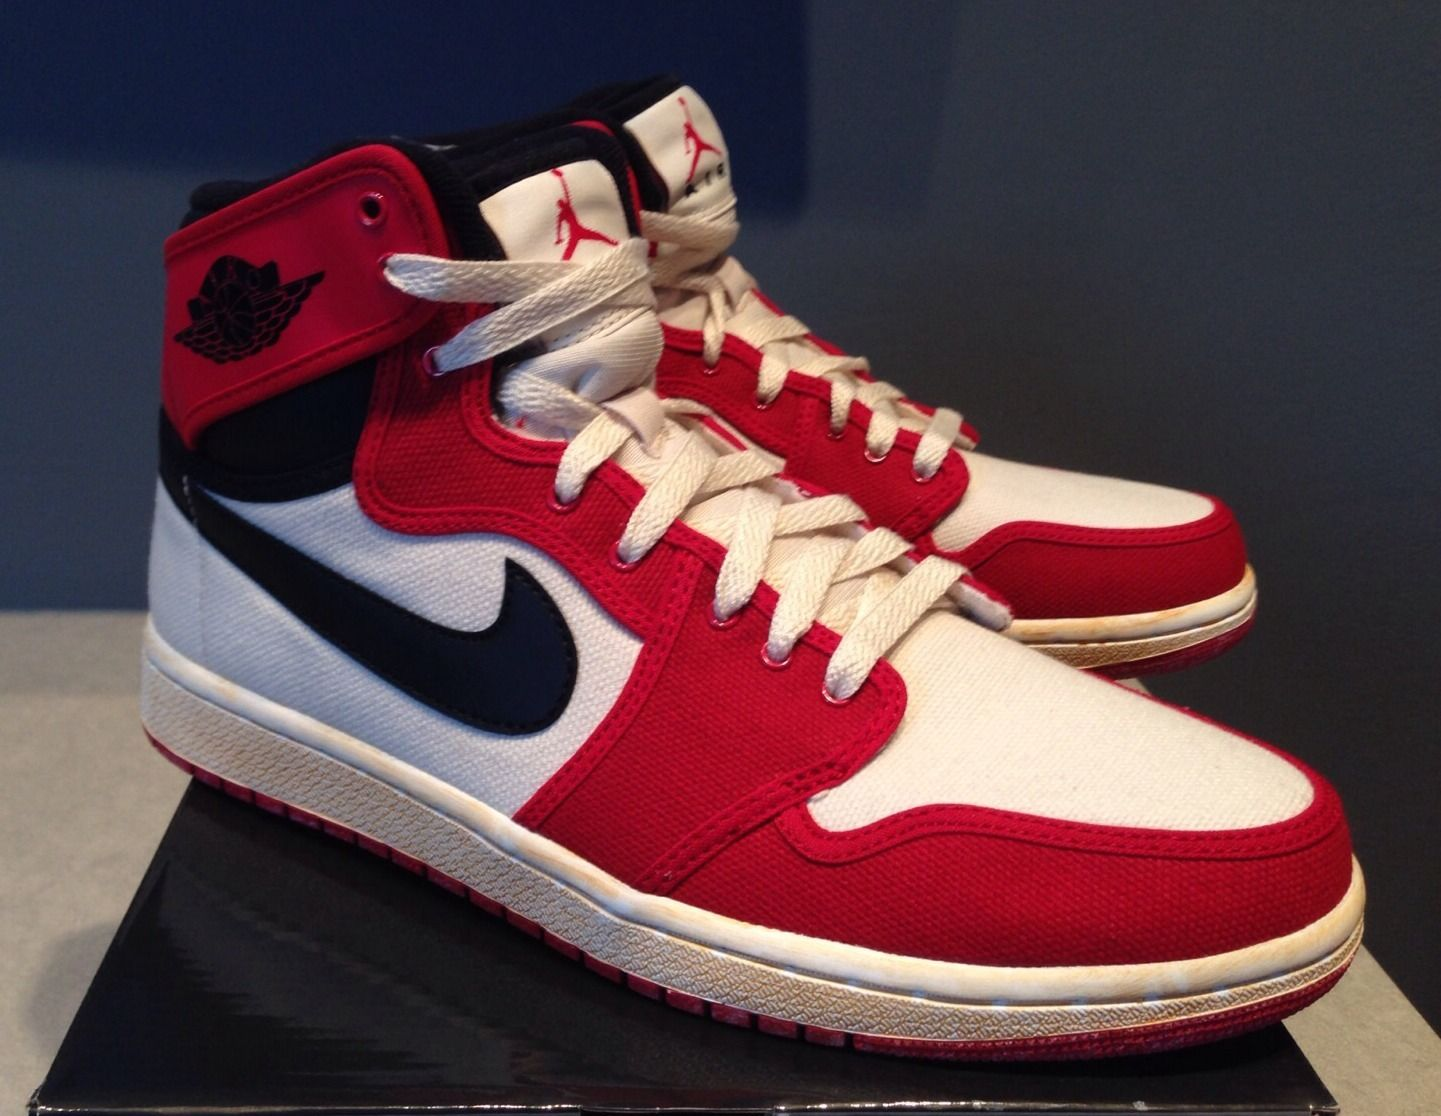 """low priced 08fb9 8e4dd Earlier today we got a preview of the upcoming Air Jordan 1 AJKO that will  hit retailers mid-month in that classic """"Red Toe"""" look."""